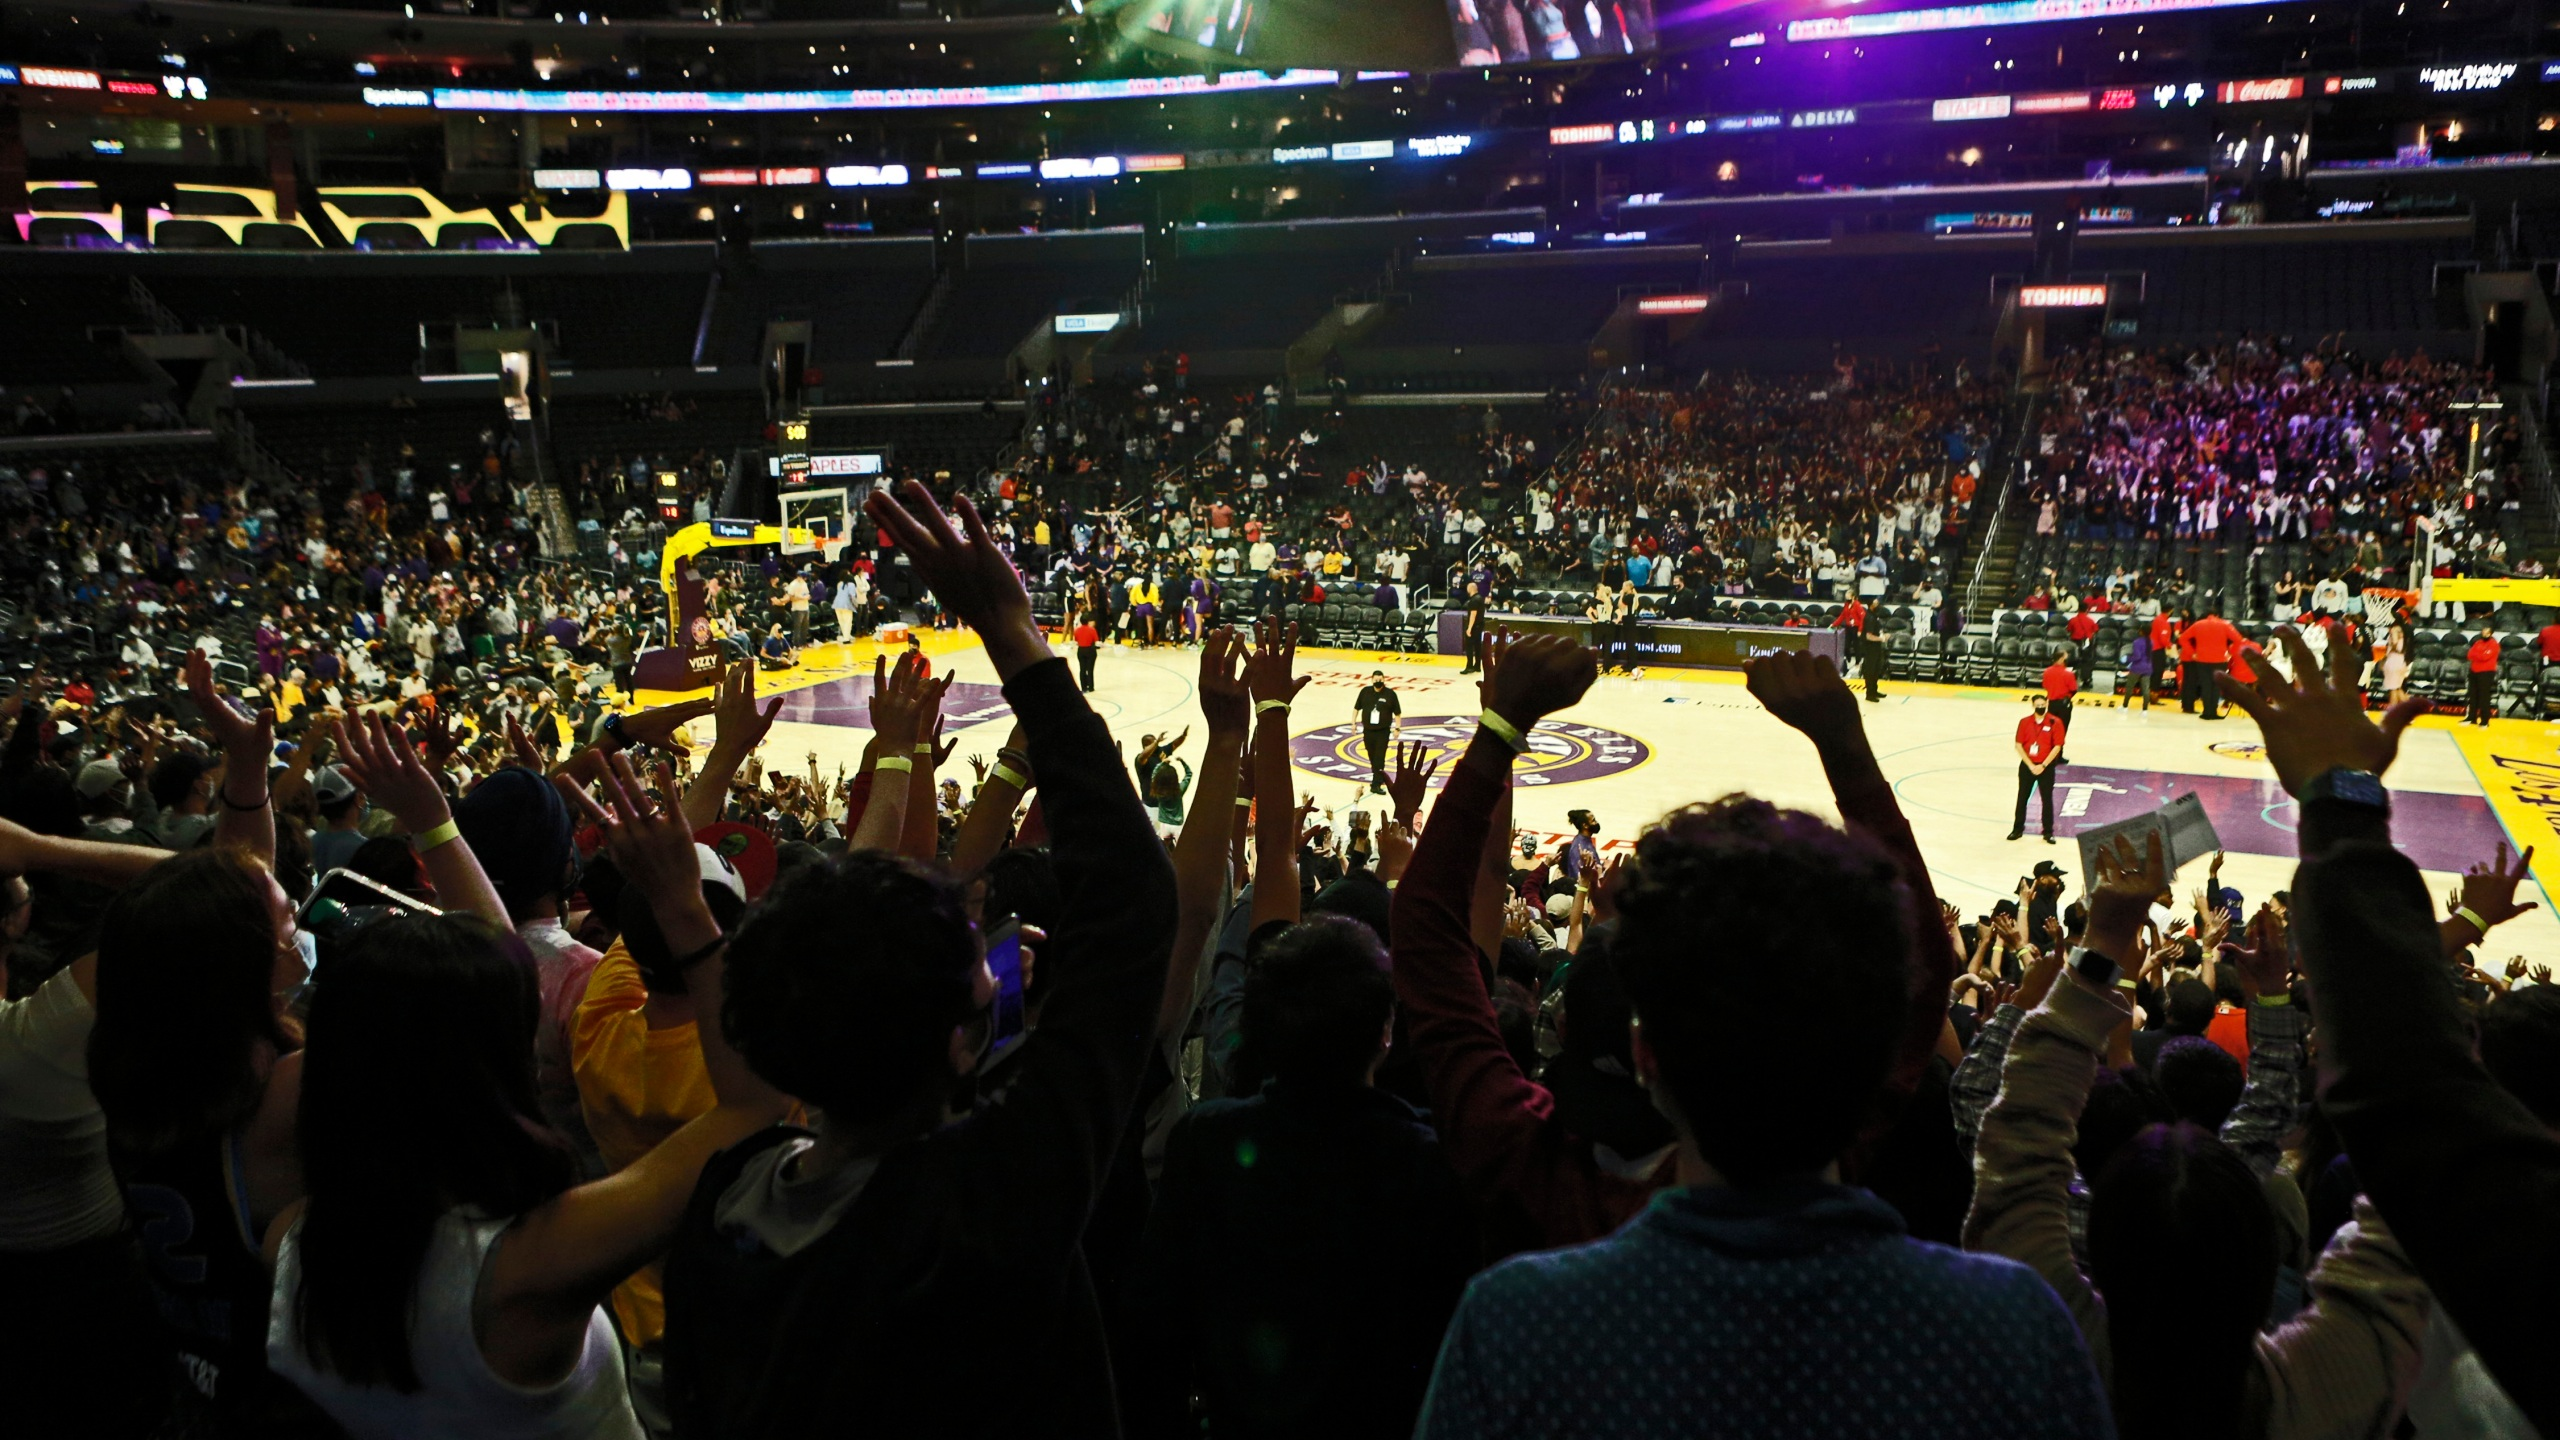 Fans react during a game between the Los Angeles Sparks and the Atlanta Dream at Staples Center on Aug. 17, 2021. (Katharine Lotze/Getty Images)